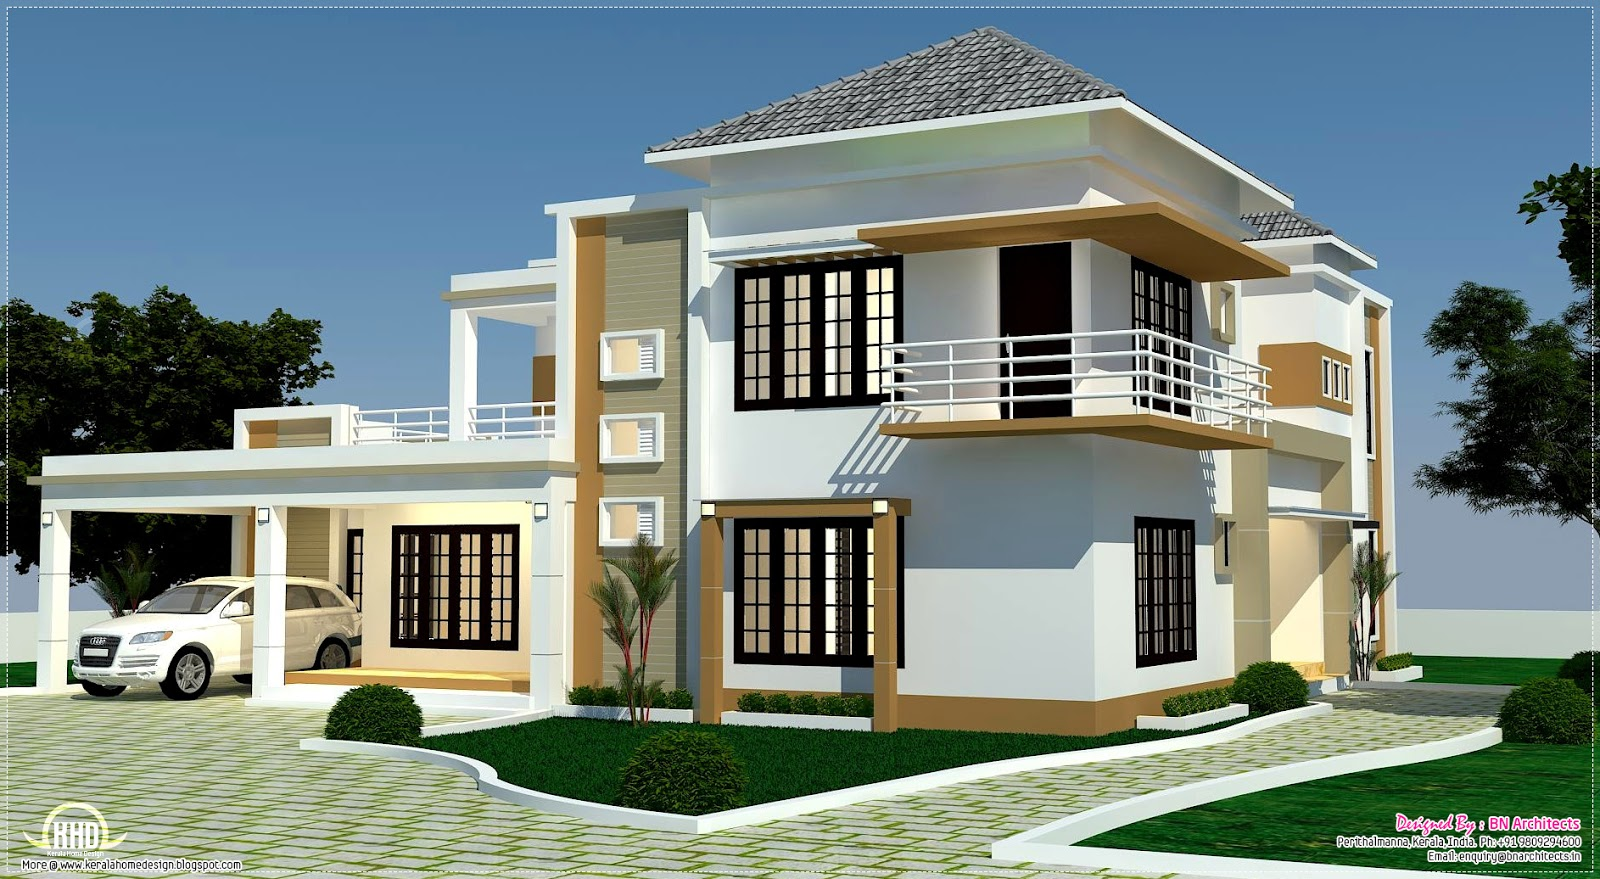 Floor plan 3d views and interiors of 4 bedroom villa for Villa plans and designs